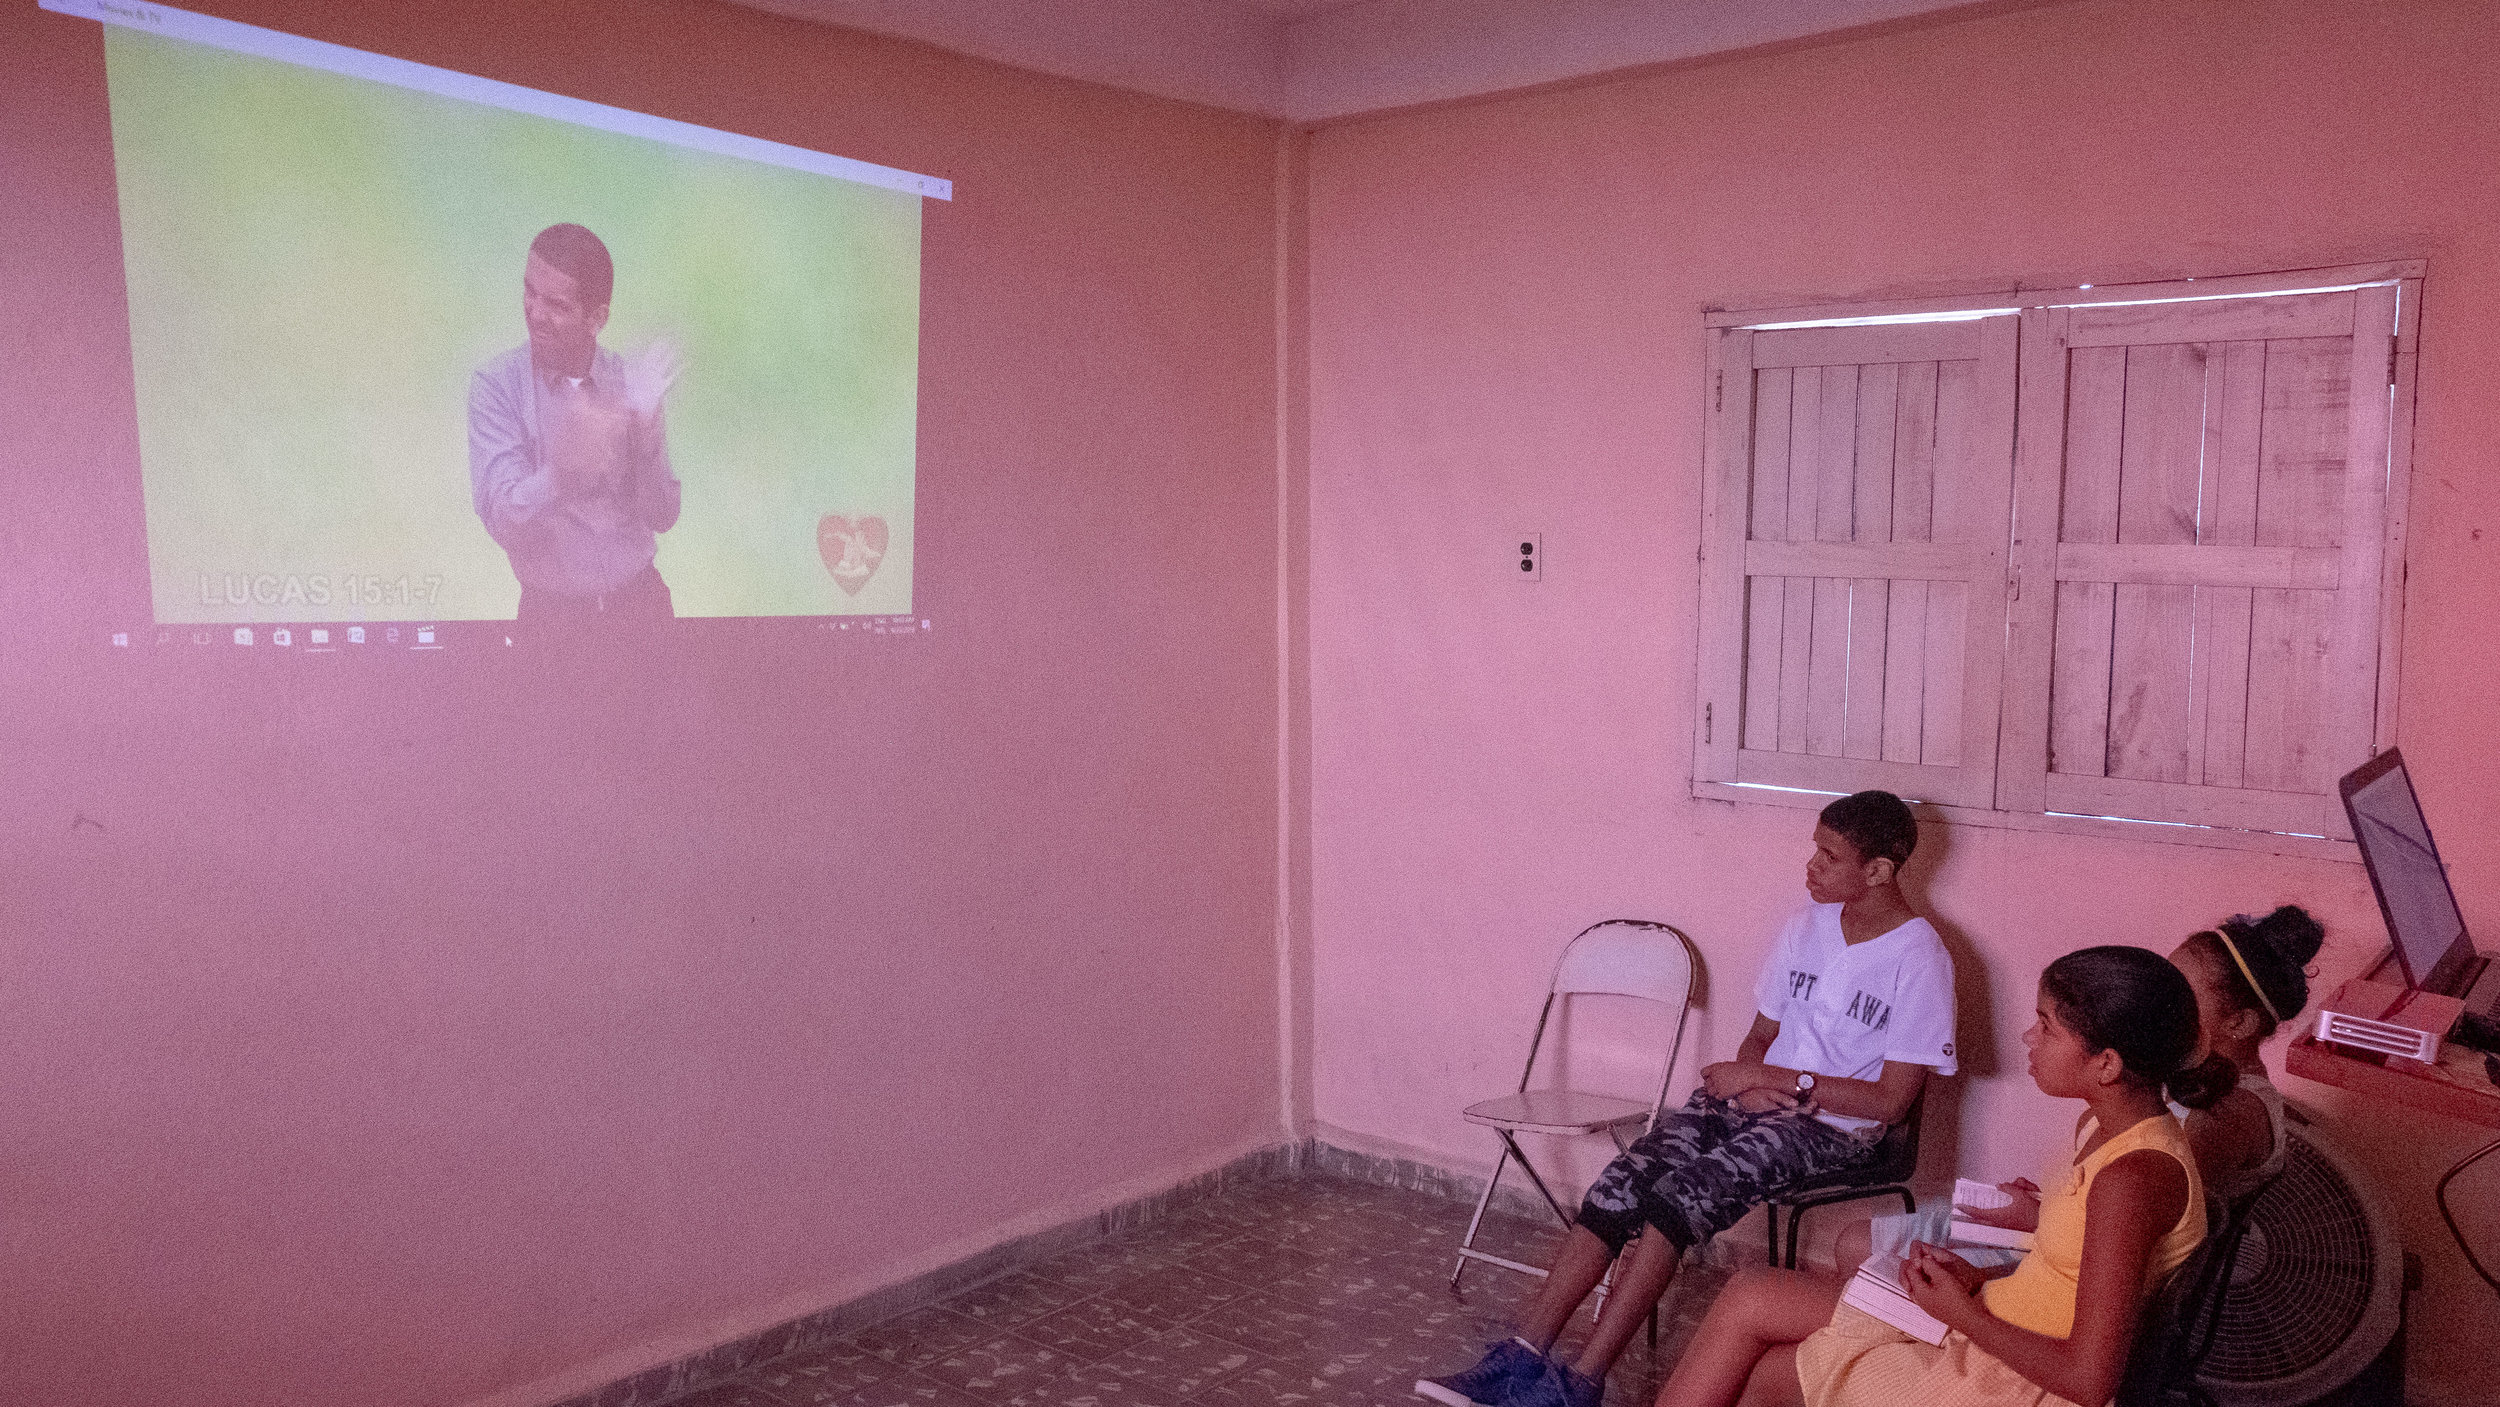 Video of Deaf Cuban Pastor telling the Parable of the Lost Sheep